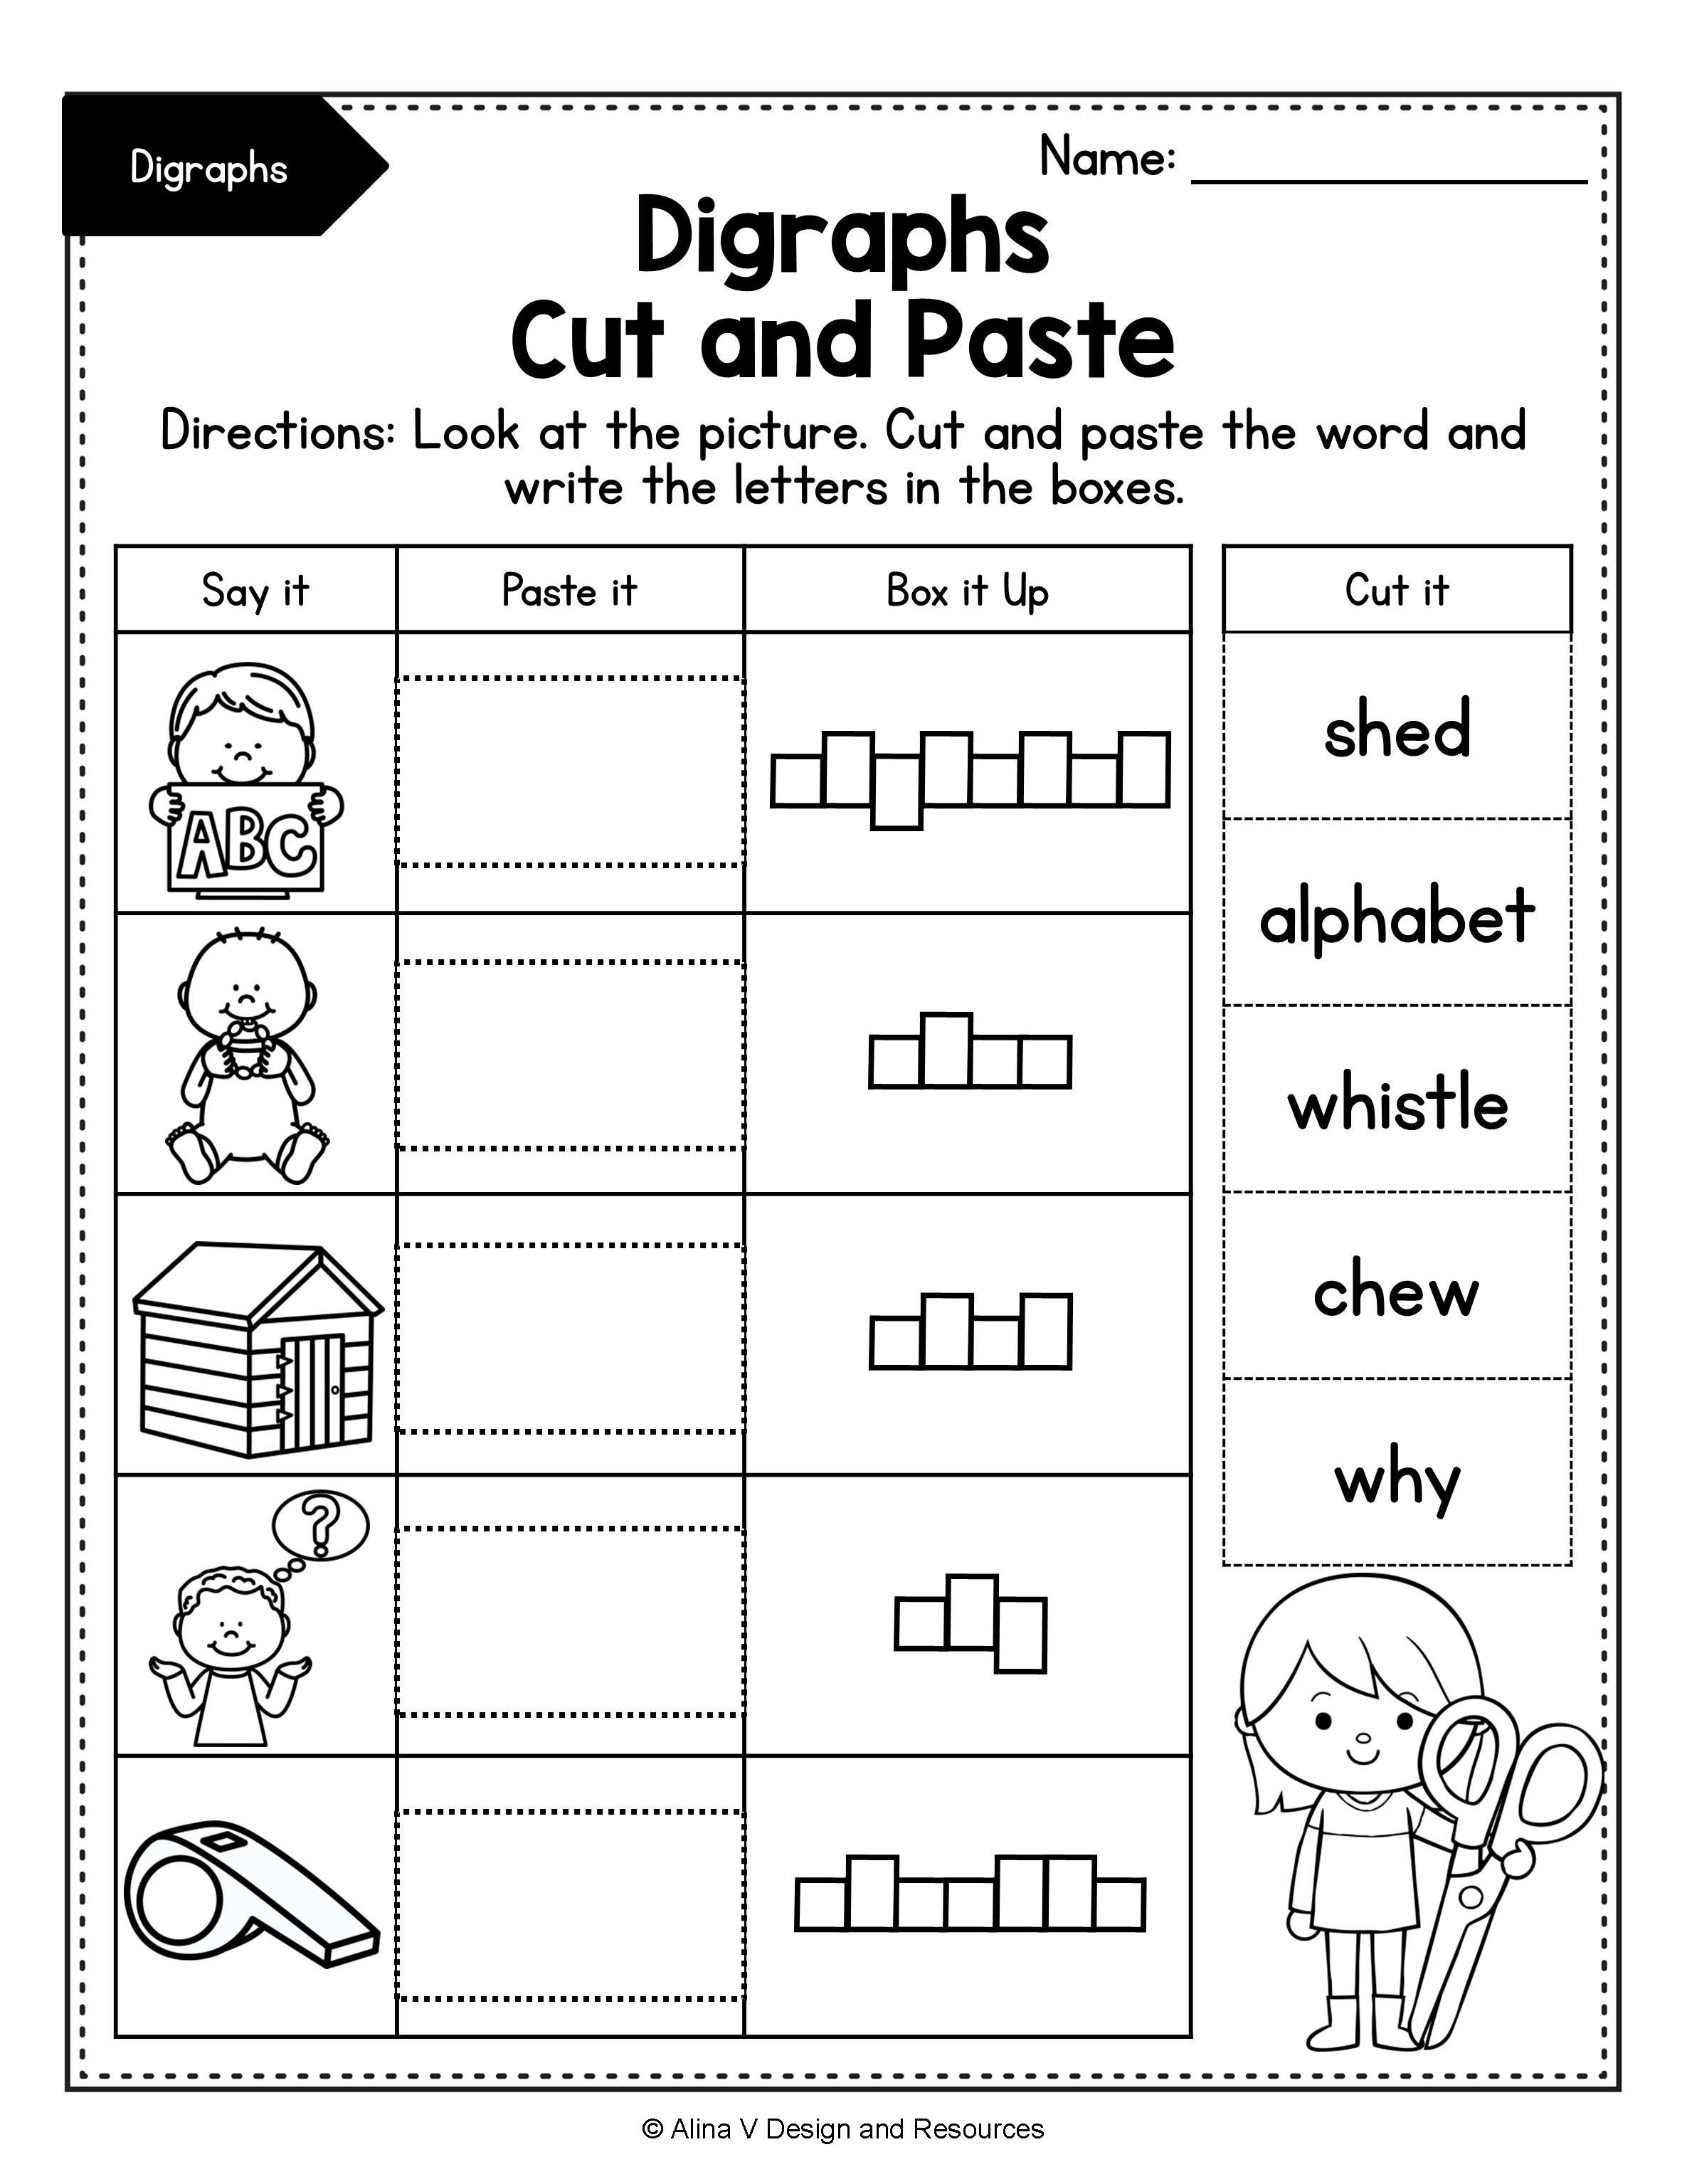 Pin On Word Work Cvc Word Families Spelling And